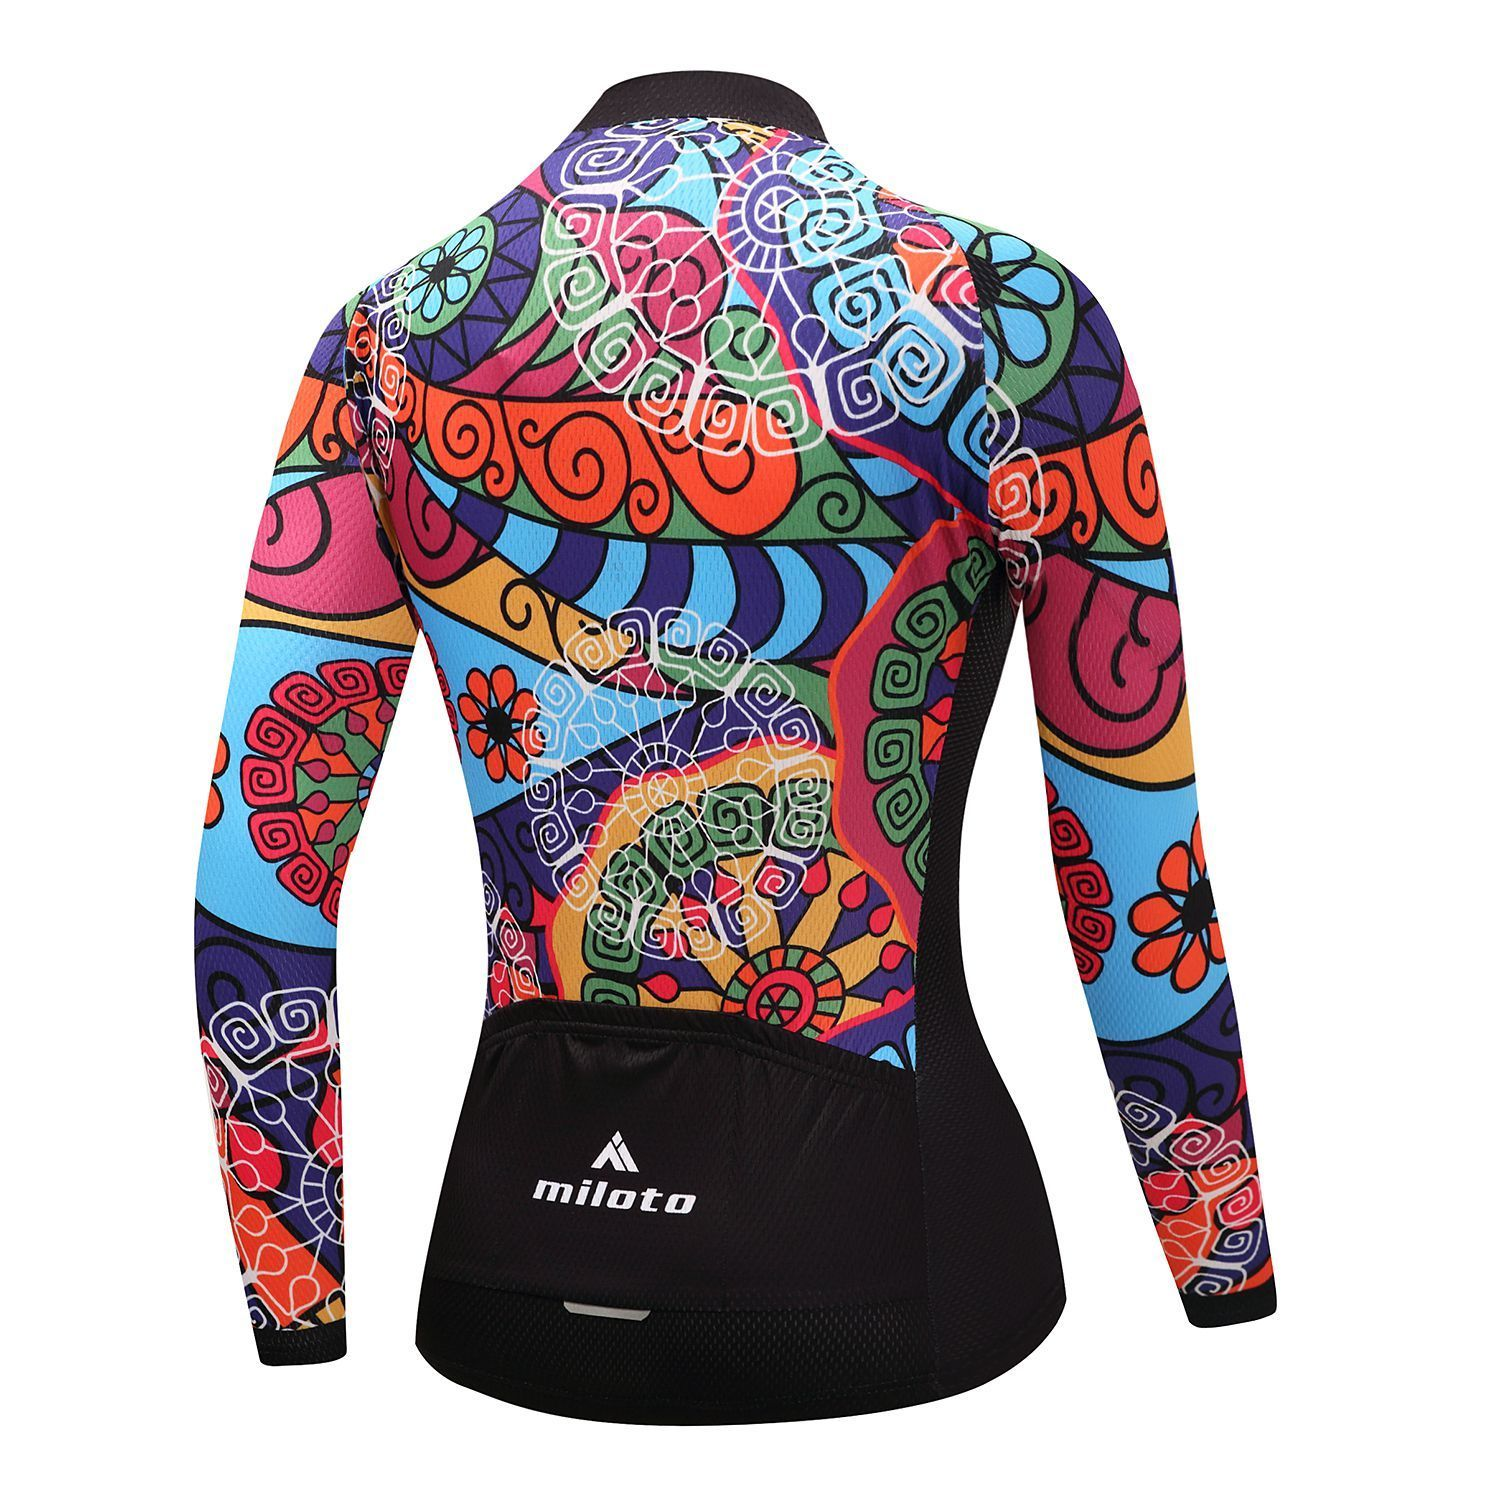 Women s Winter Fleece Cycle Jersey Long Sleeve Ladies Thermal Cycling Shirts.  Detail 183d29a1b